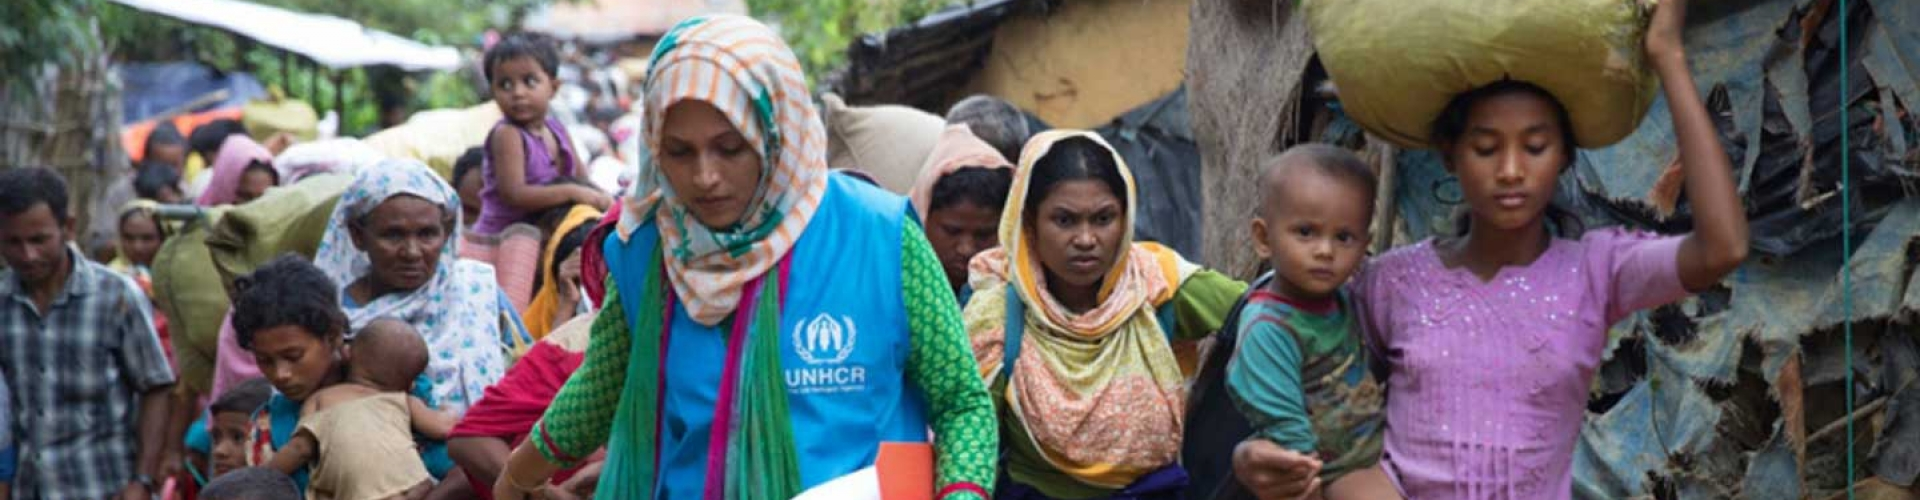 'For as long as I can, I want to be with UNHCR' Meet Shirin Aktar, a protection officer who works in Bangladesh.